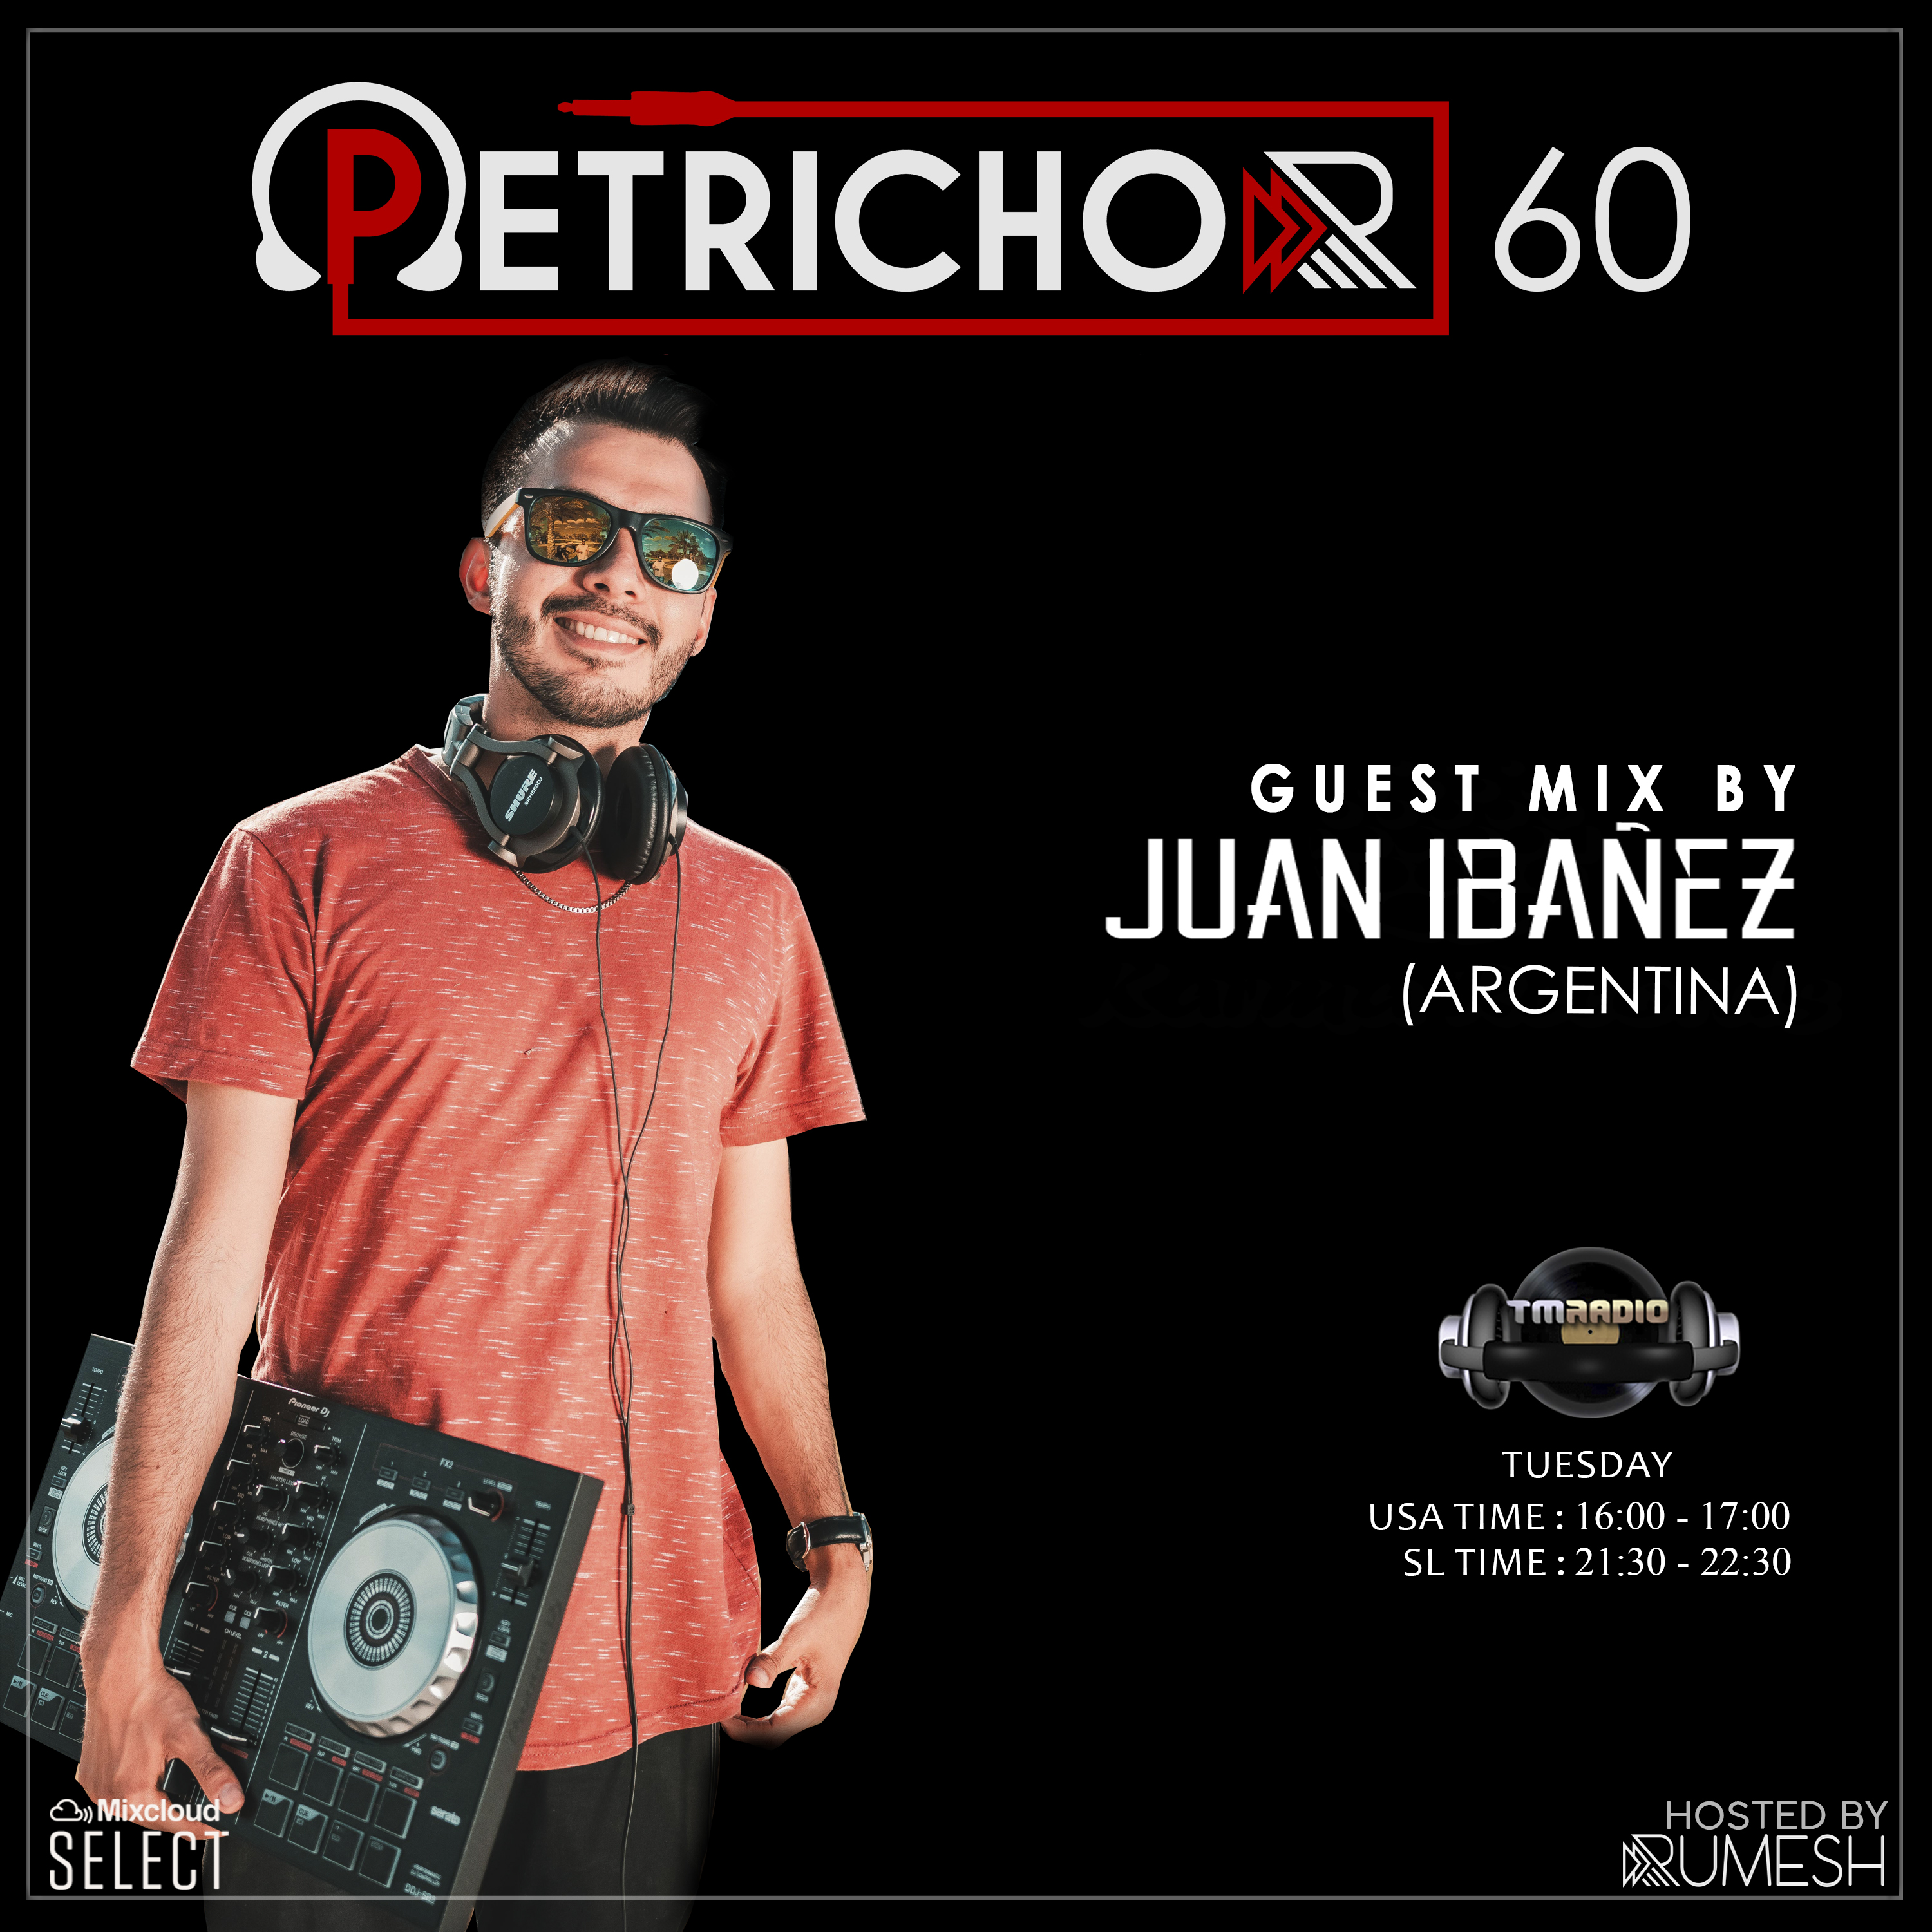 Petrichor :: Petrichor 60 guest mix by Juan ibanez (Argentina) (aired on December 31st, 2019) banner logo